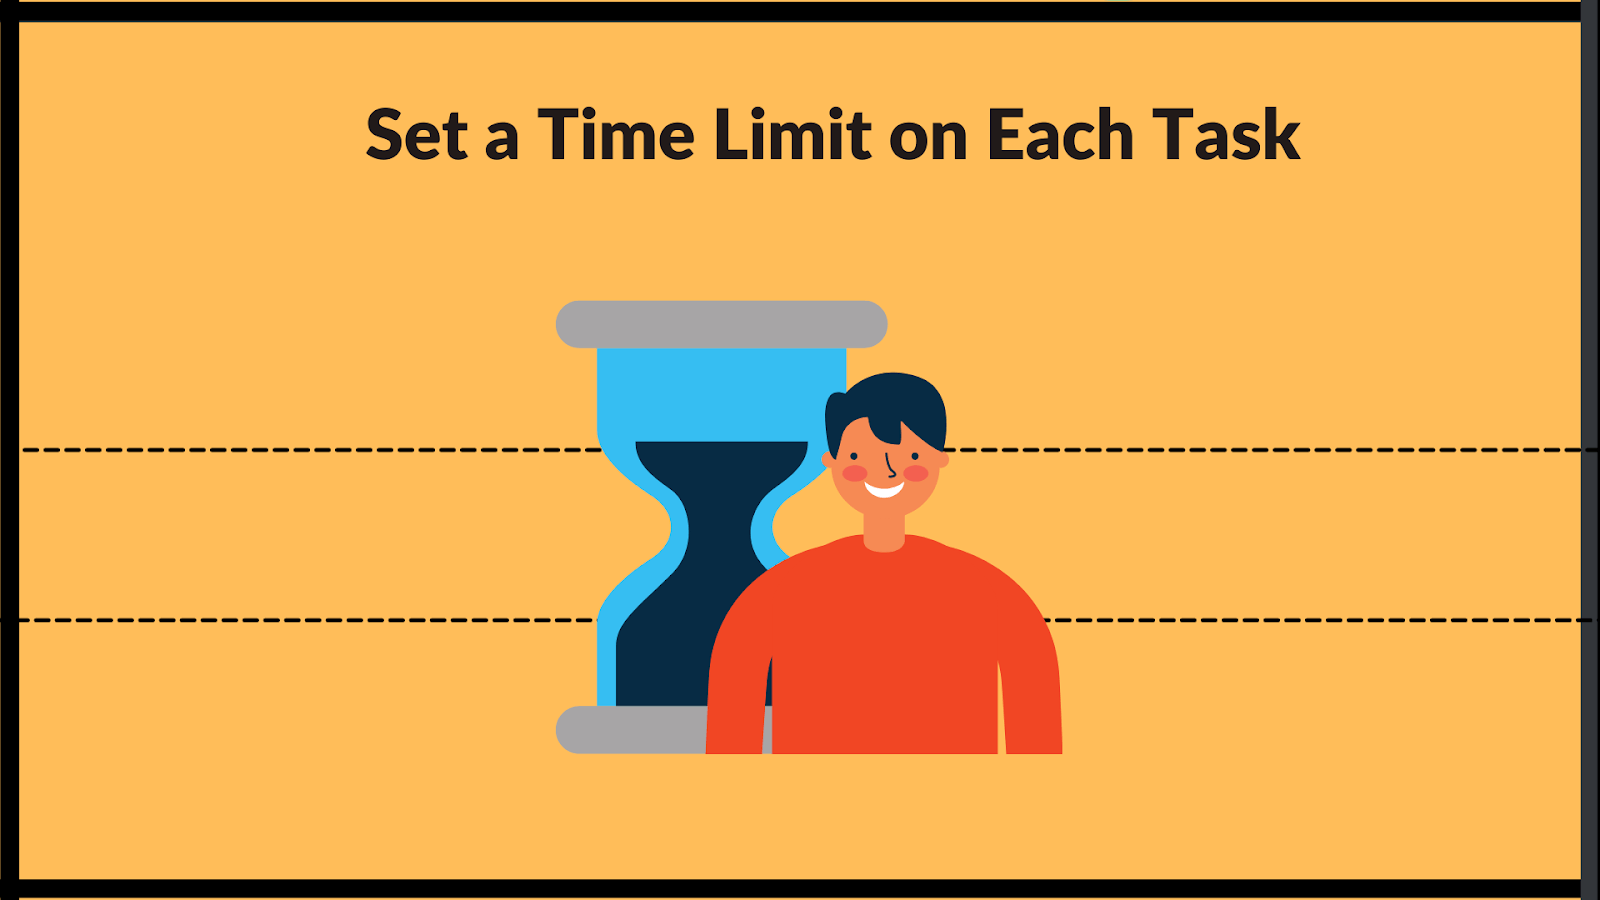 set a time limit on tasks to become more productive